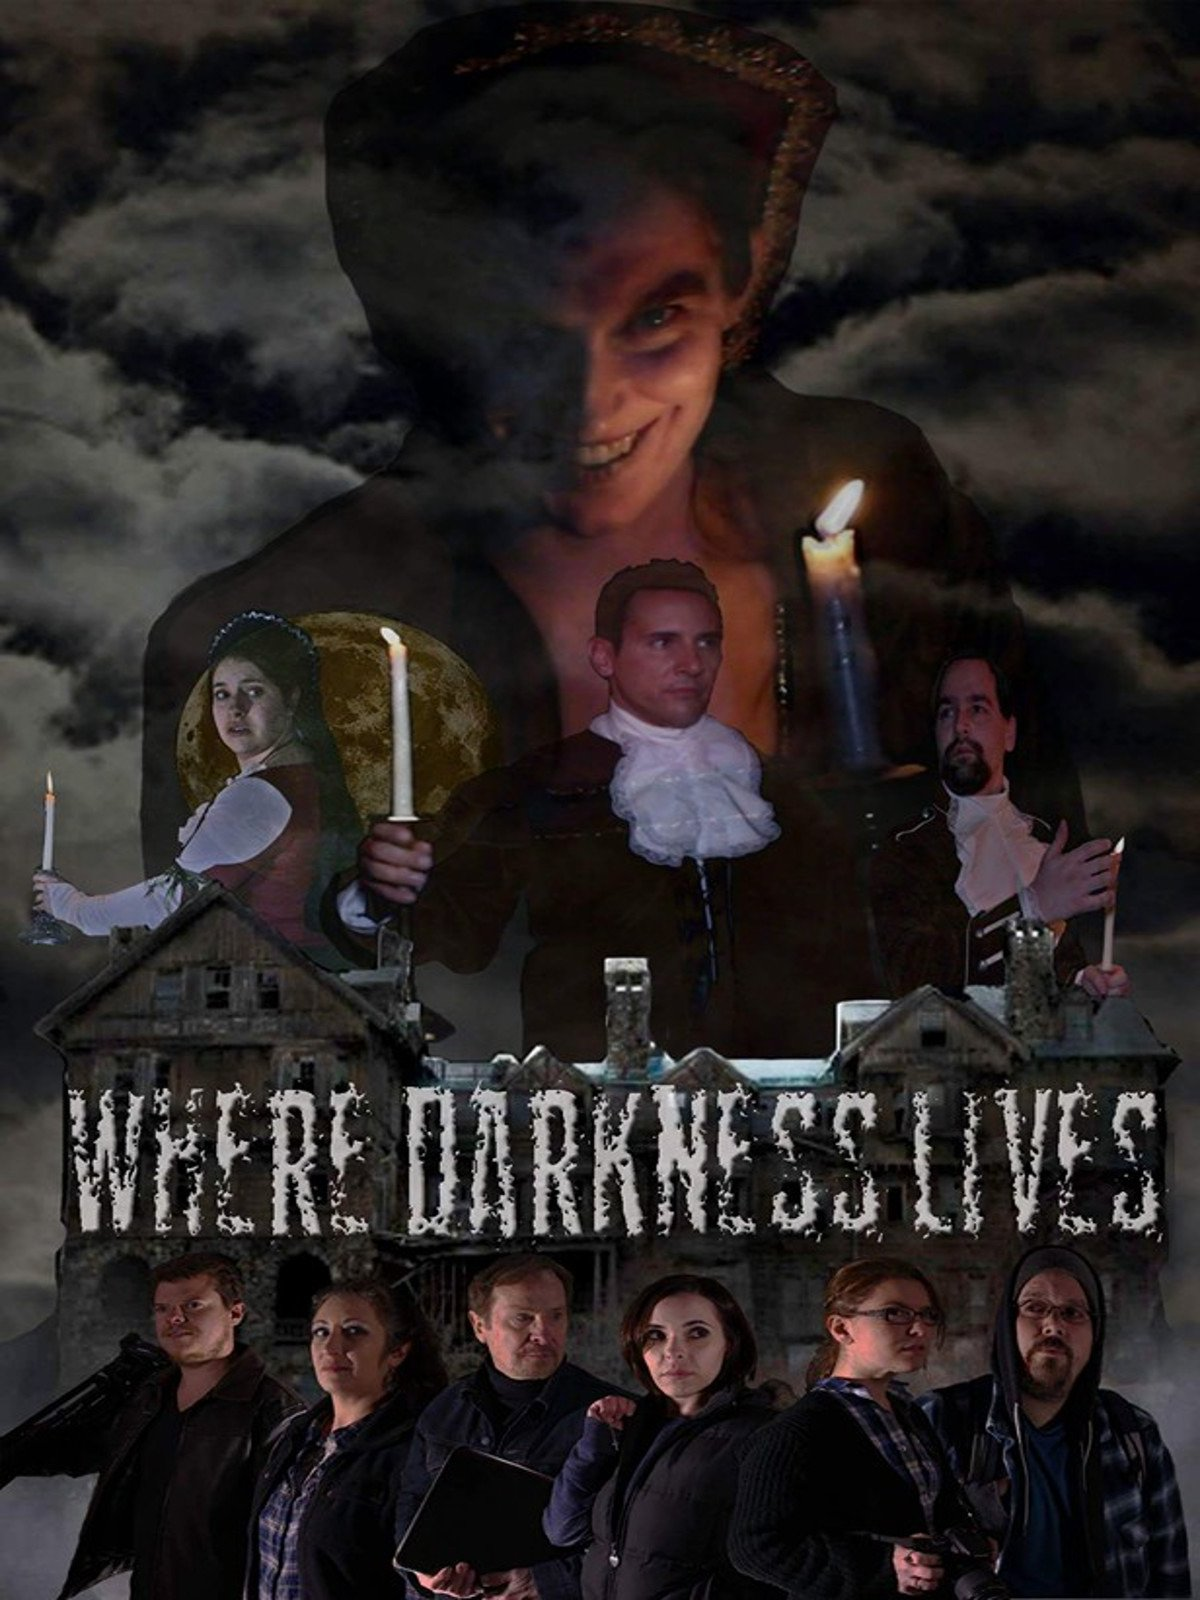 Where Darkness Lives